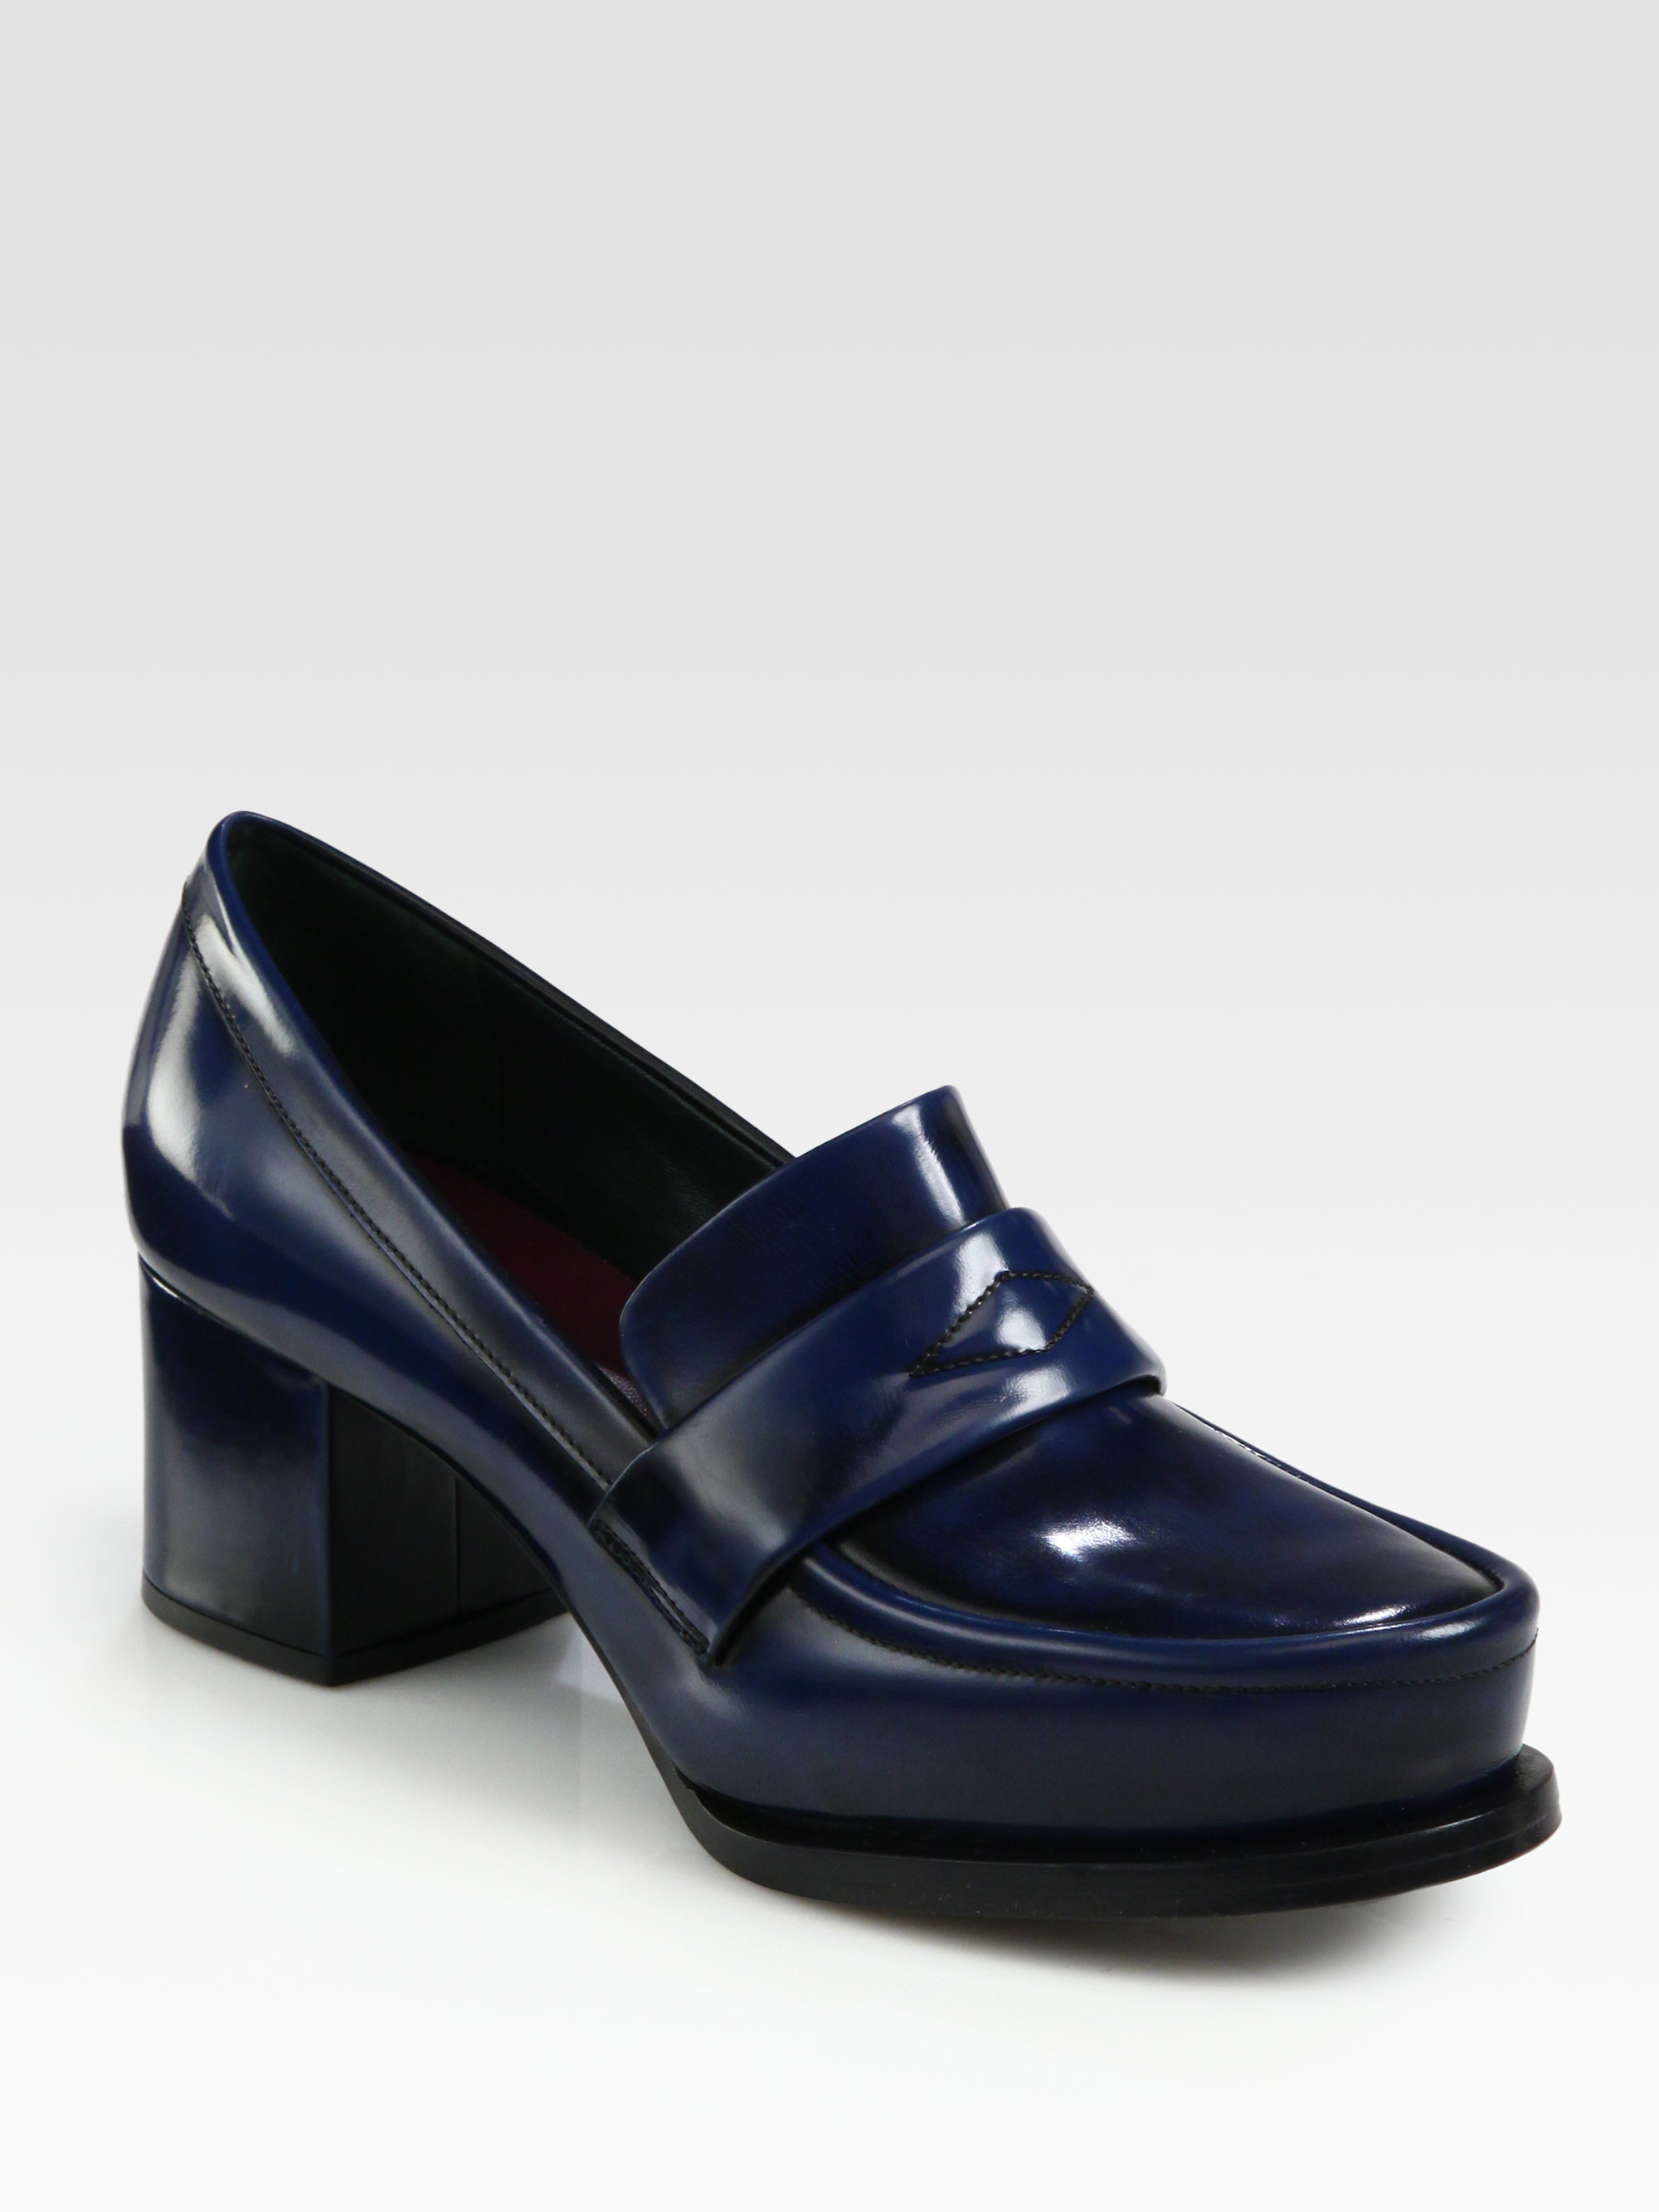 Jil Sander Navy Leather Loafer Pumps sale finishline cheap sale fashionable cheap price fake factory outlet cheap price 5E4nk